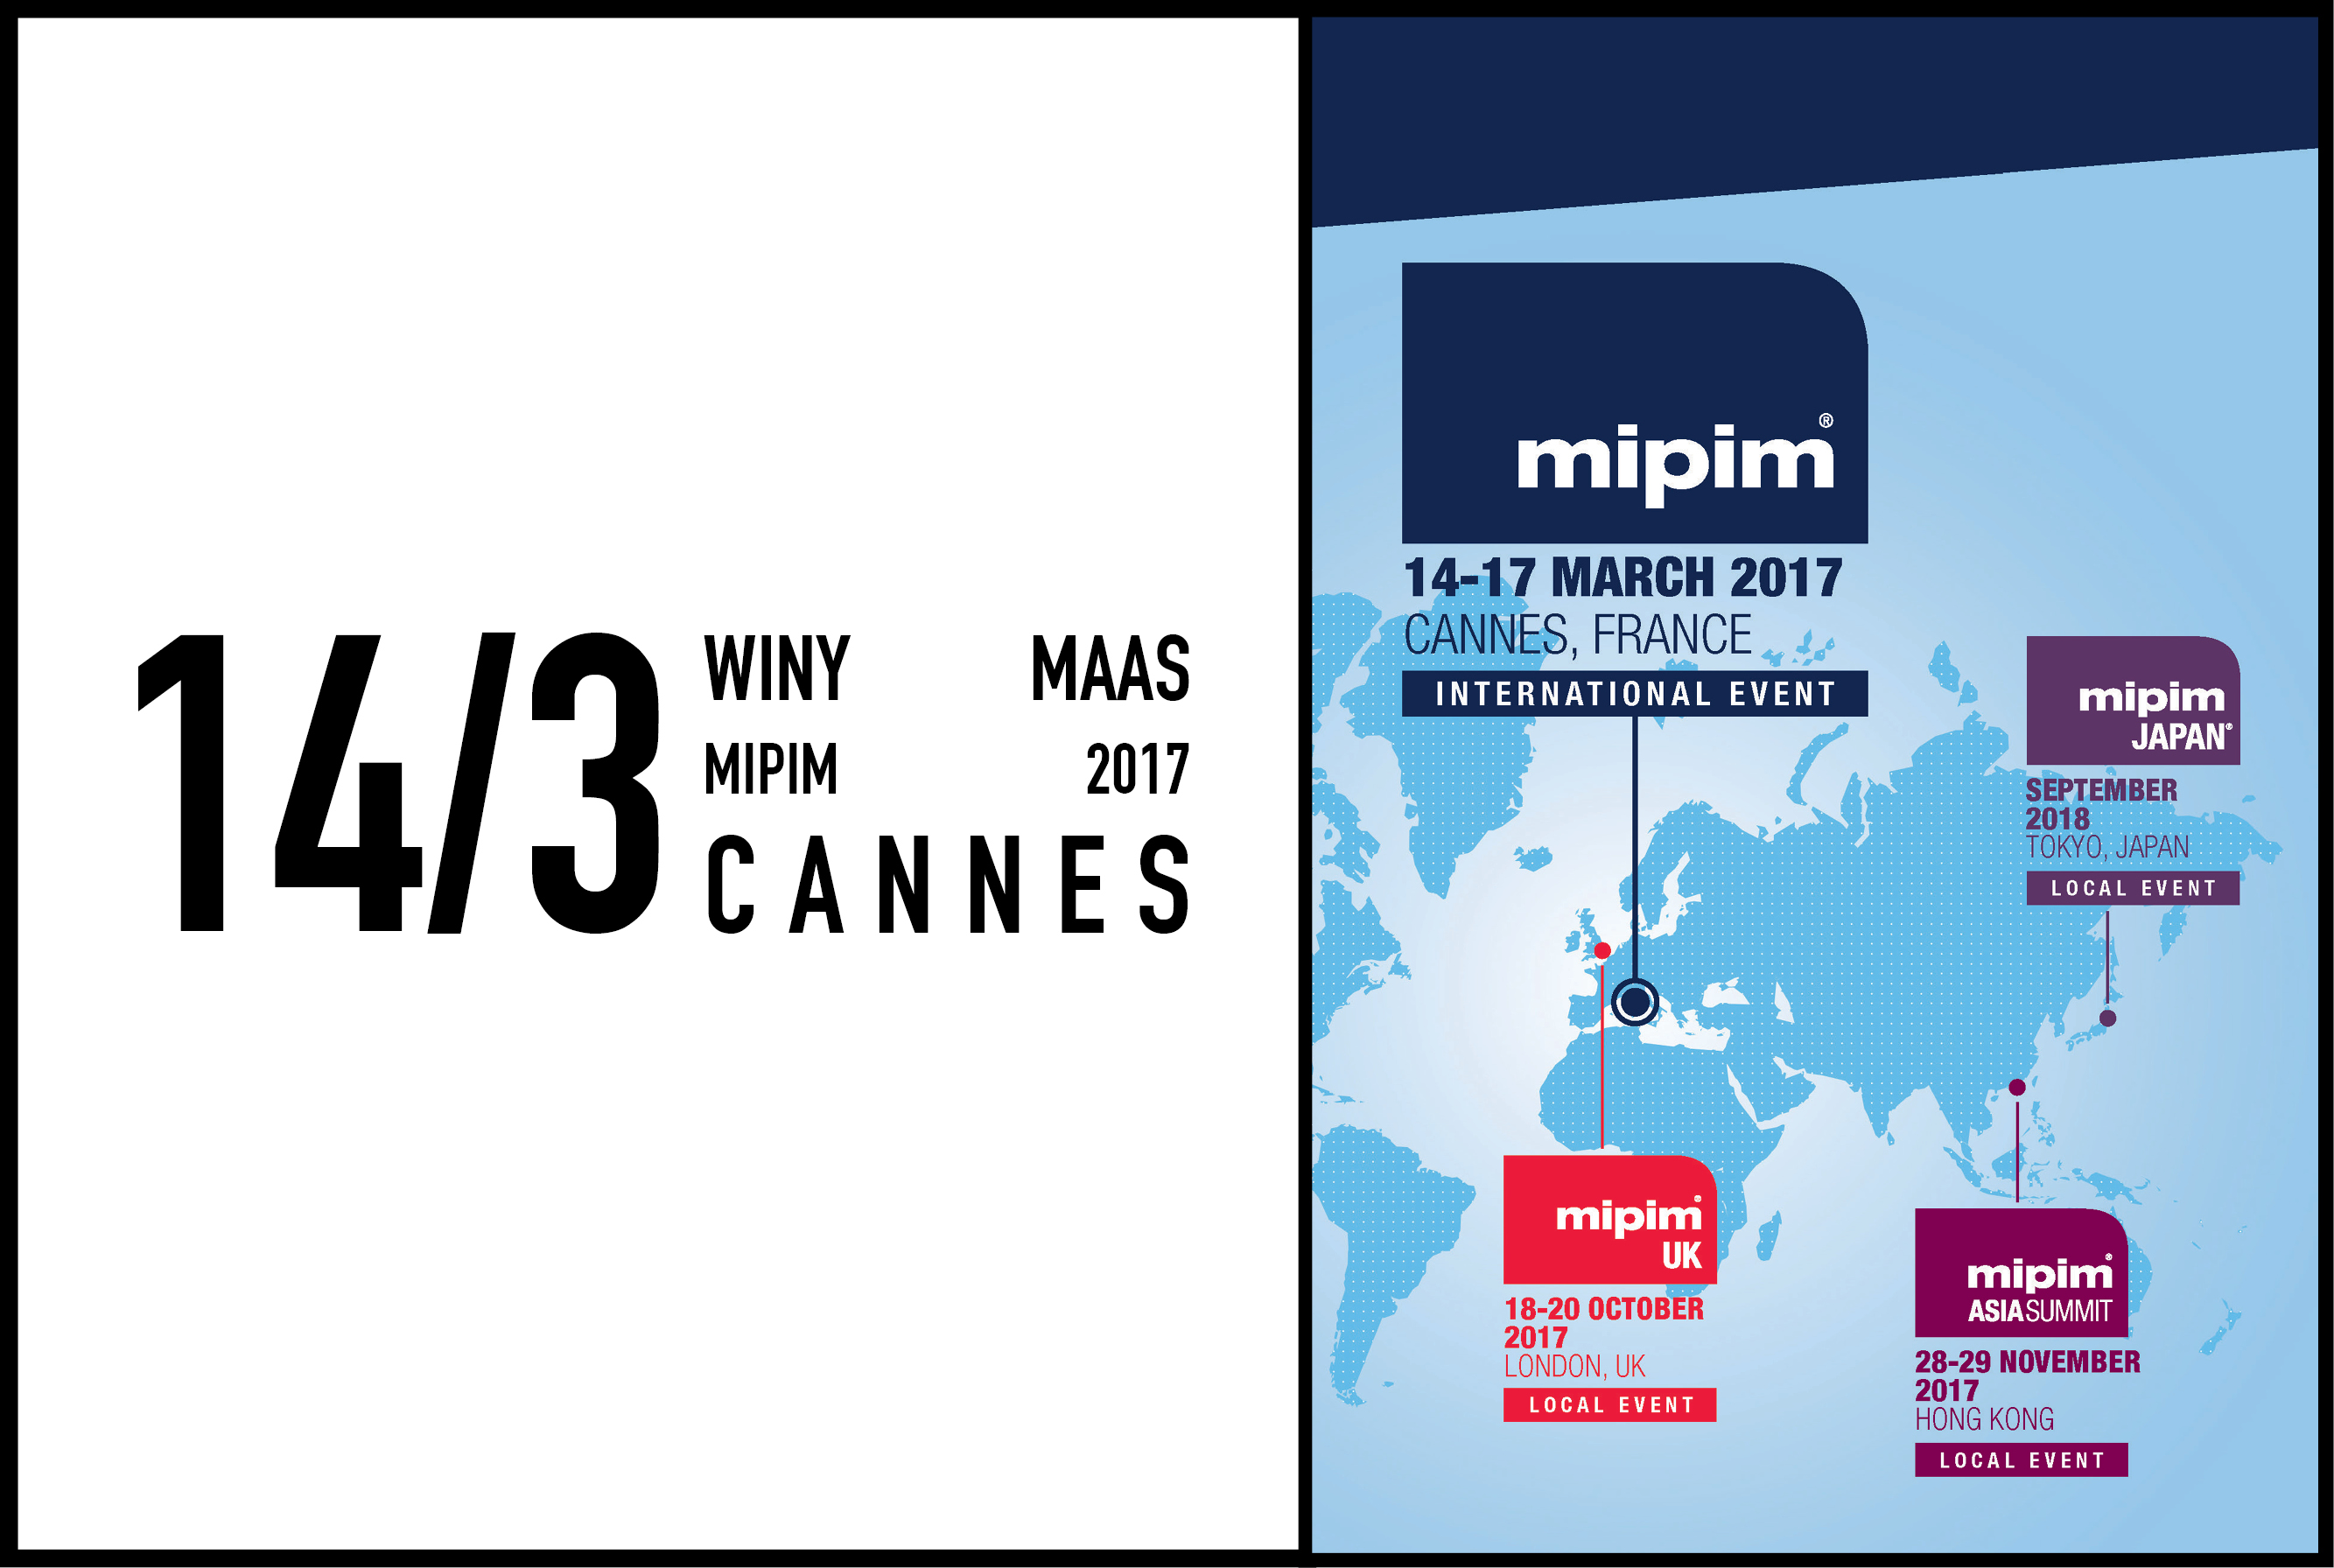 Winy Maas speaking at MIPIM 2017, 14 March 2017